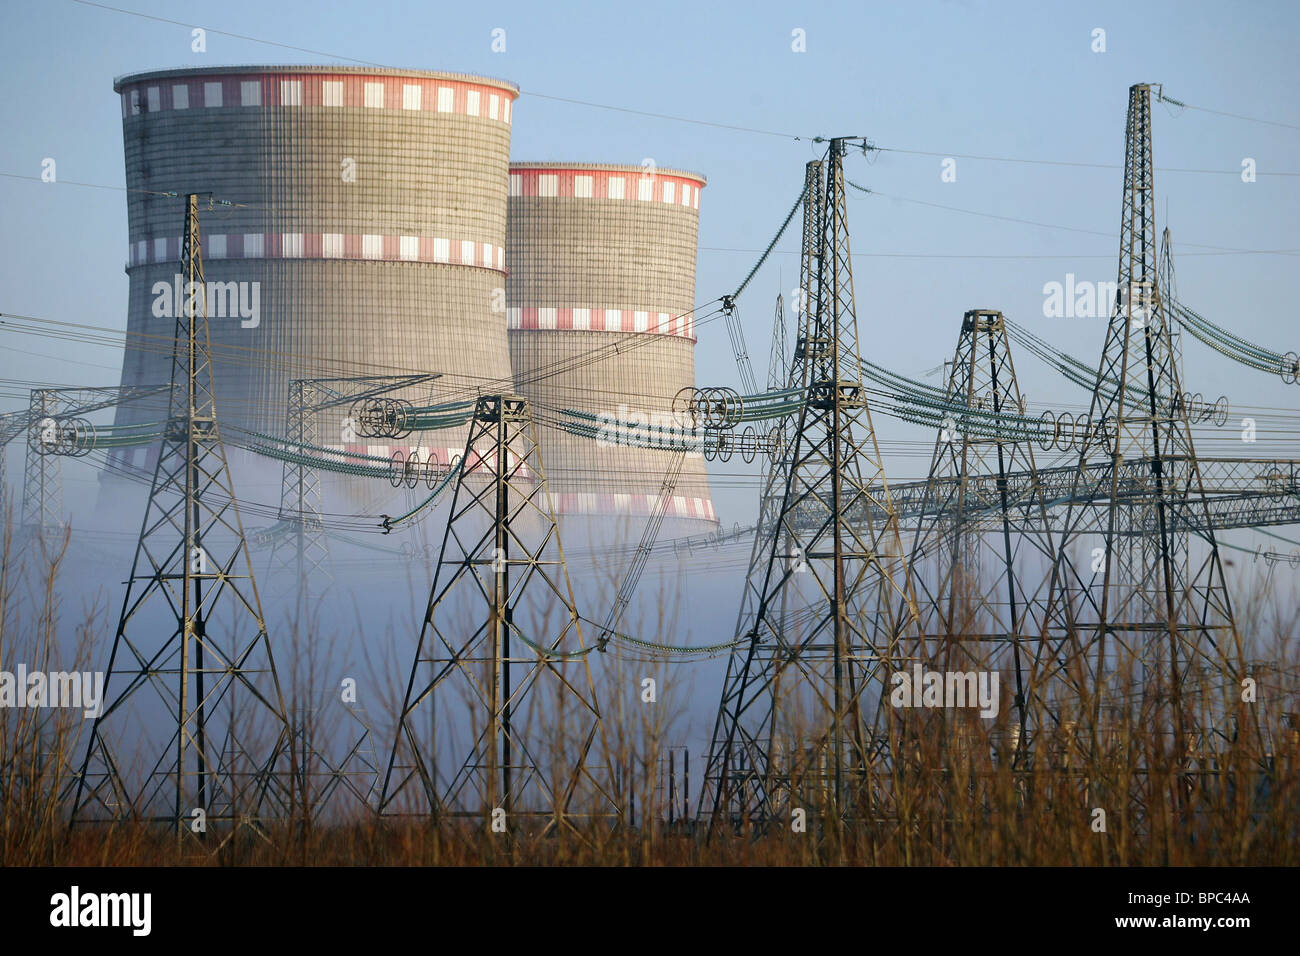 Kalinin Nuclear Power Plant in operation - Stock Image